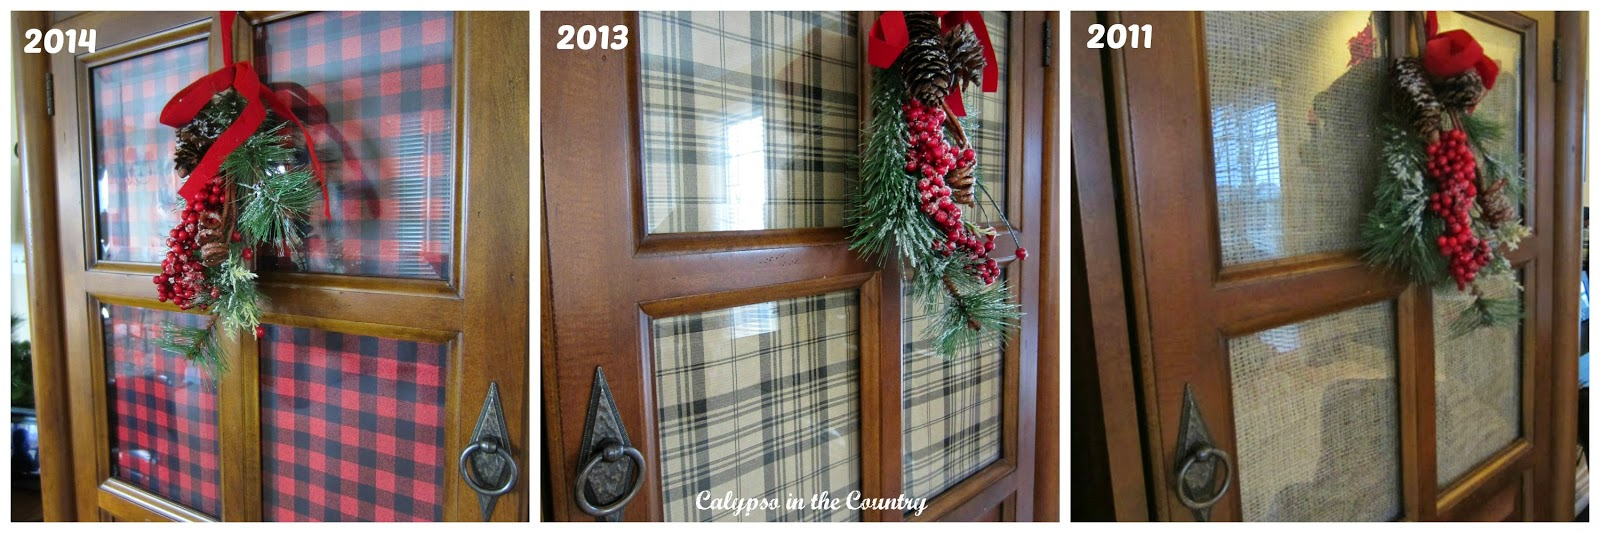 3 Looks for Cabinet Doors Using Wrapping Paper